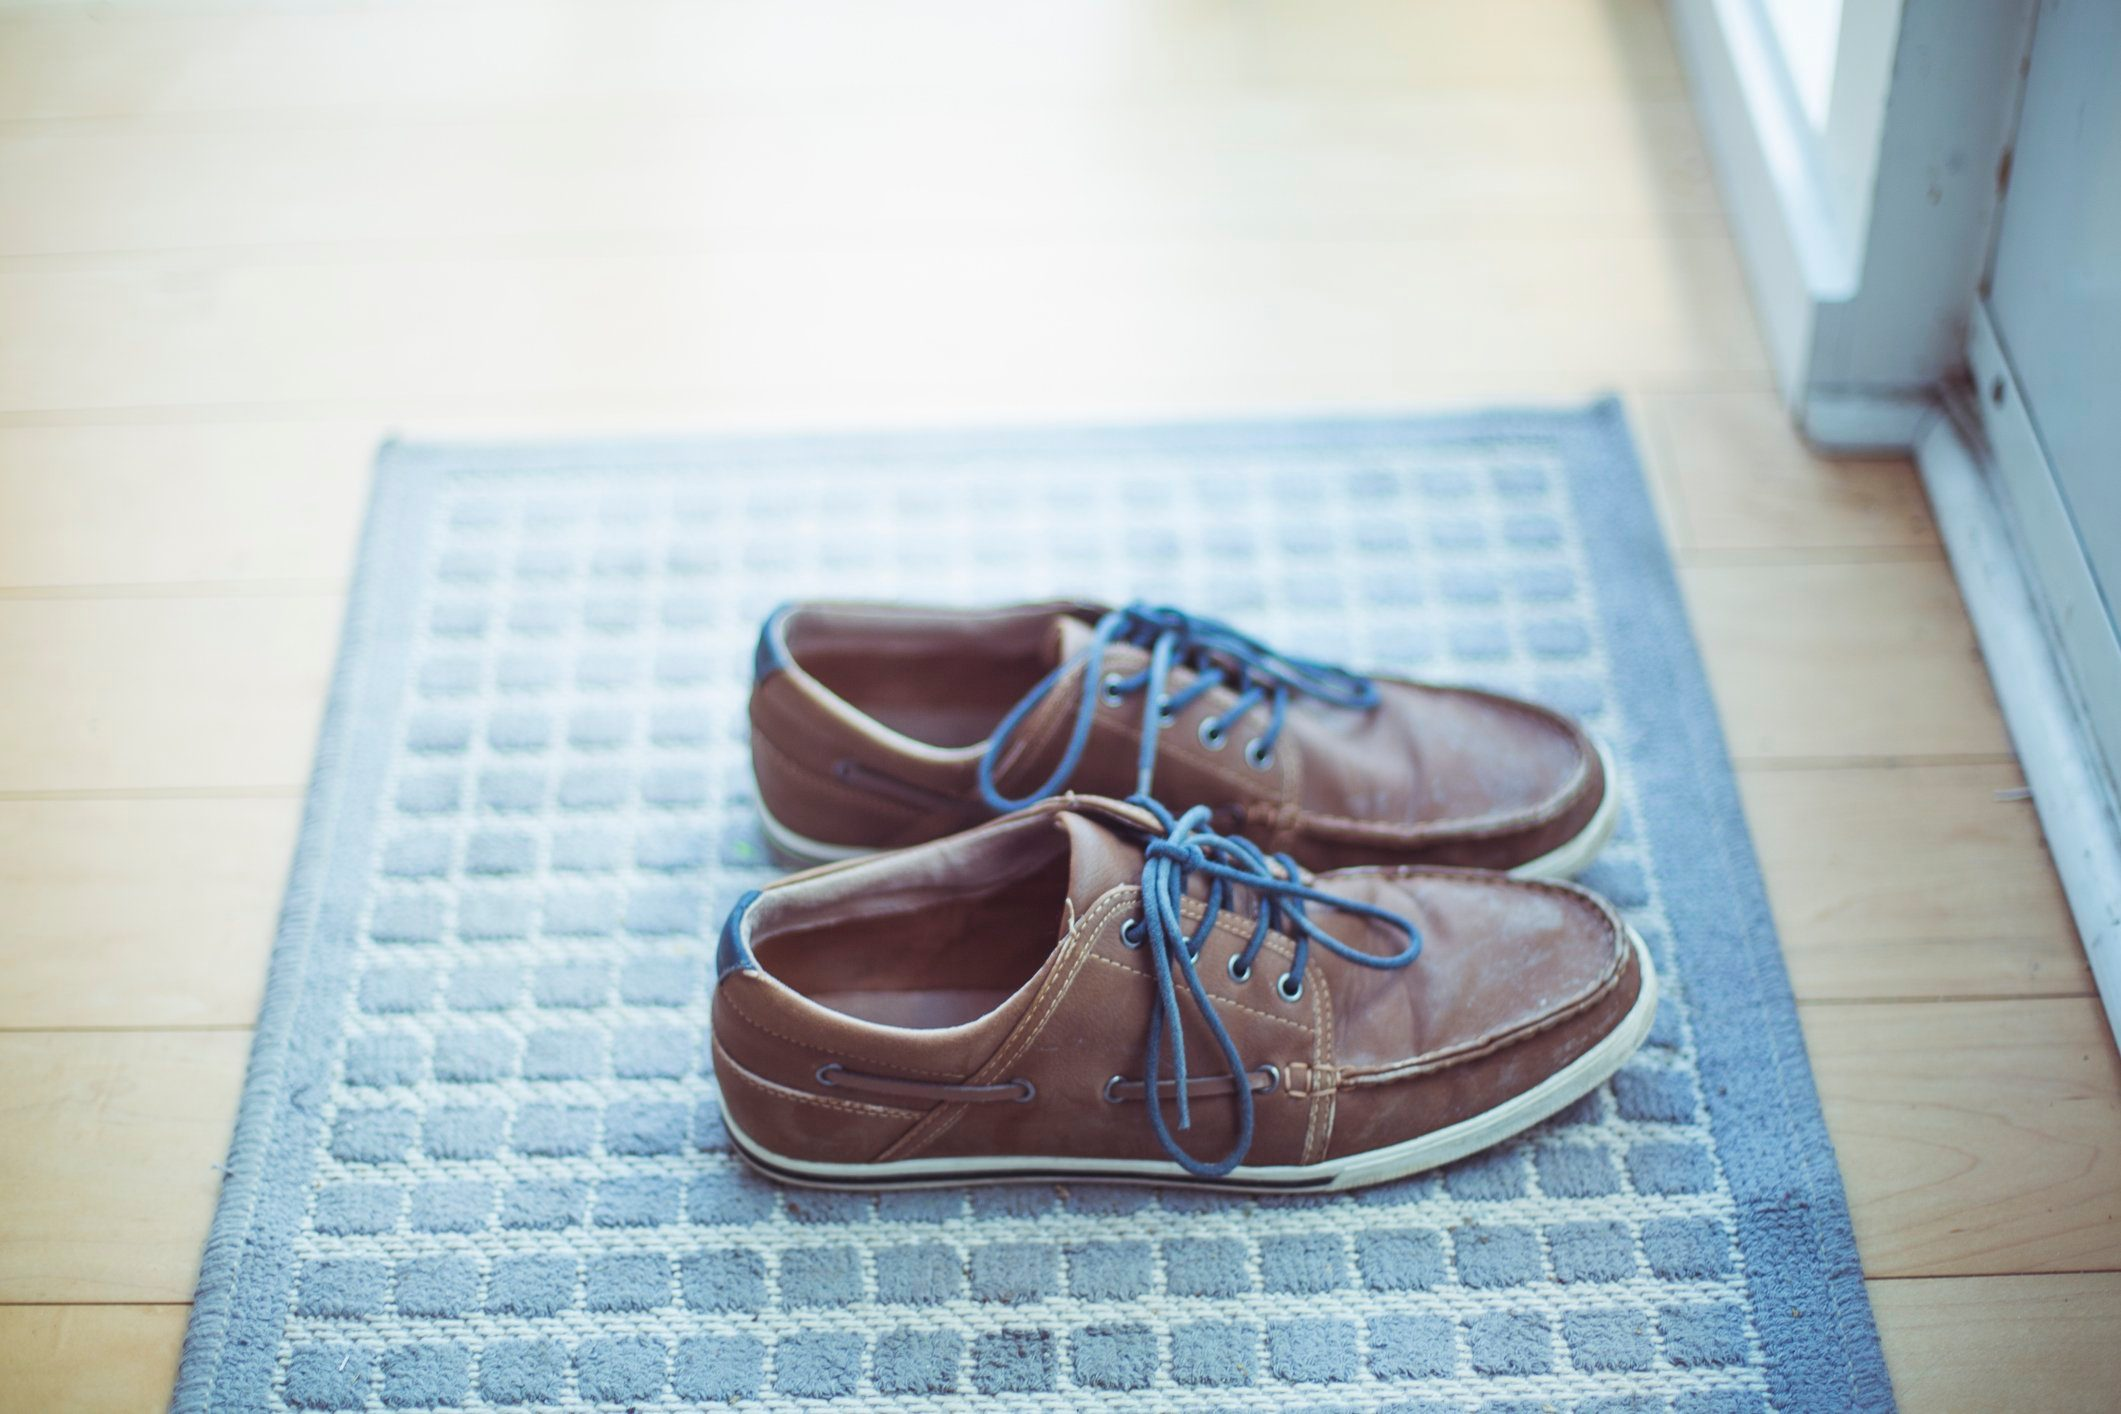 shoes on mat by front door of house